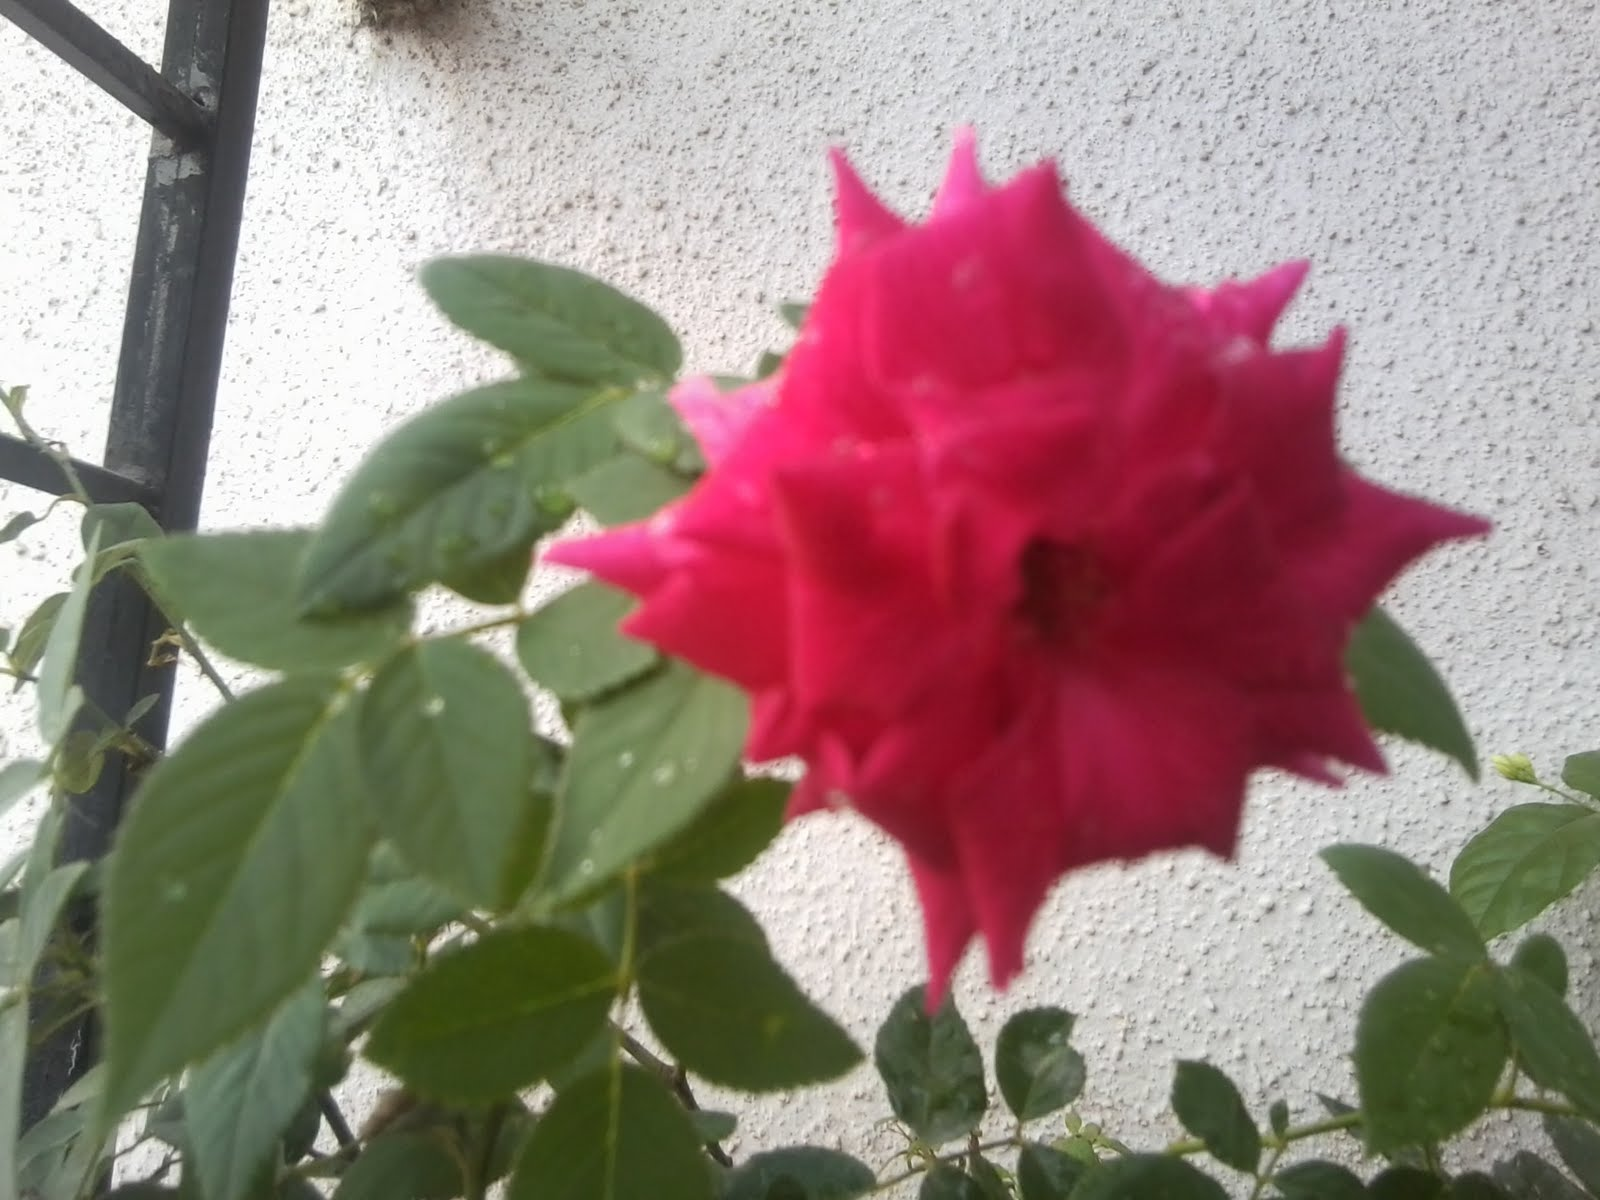 My views a rose is a rose is a rose i sit and watch these rose flowers grown seeing these plants bloom and flower has put a smile on my facelourful rose flowers give a beautiful izmirmasajfo